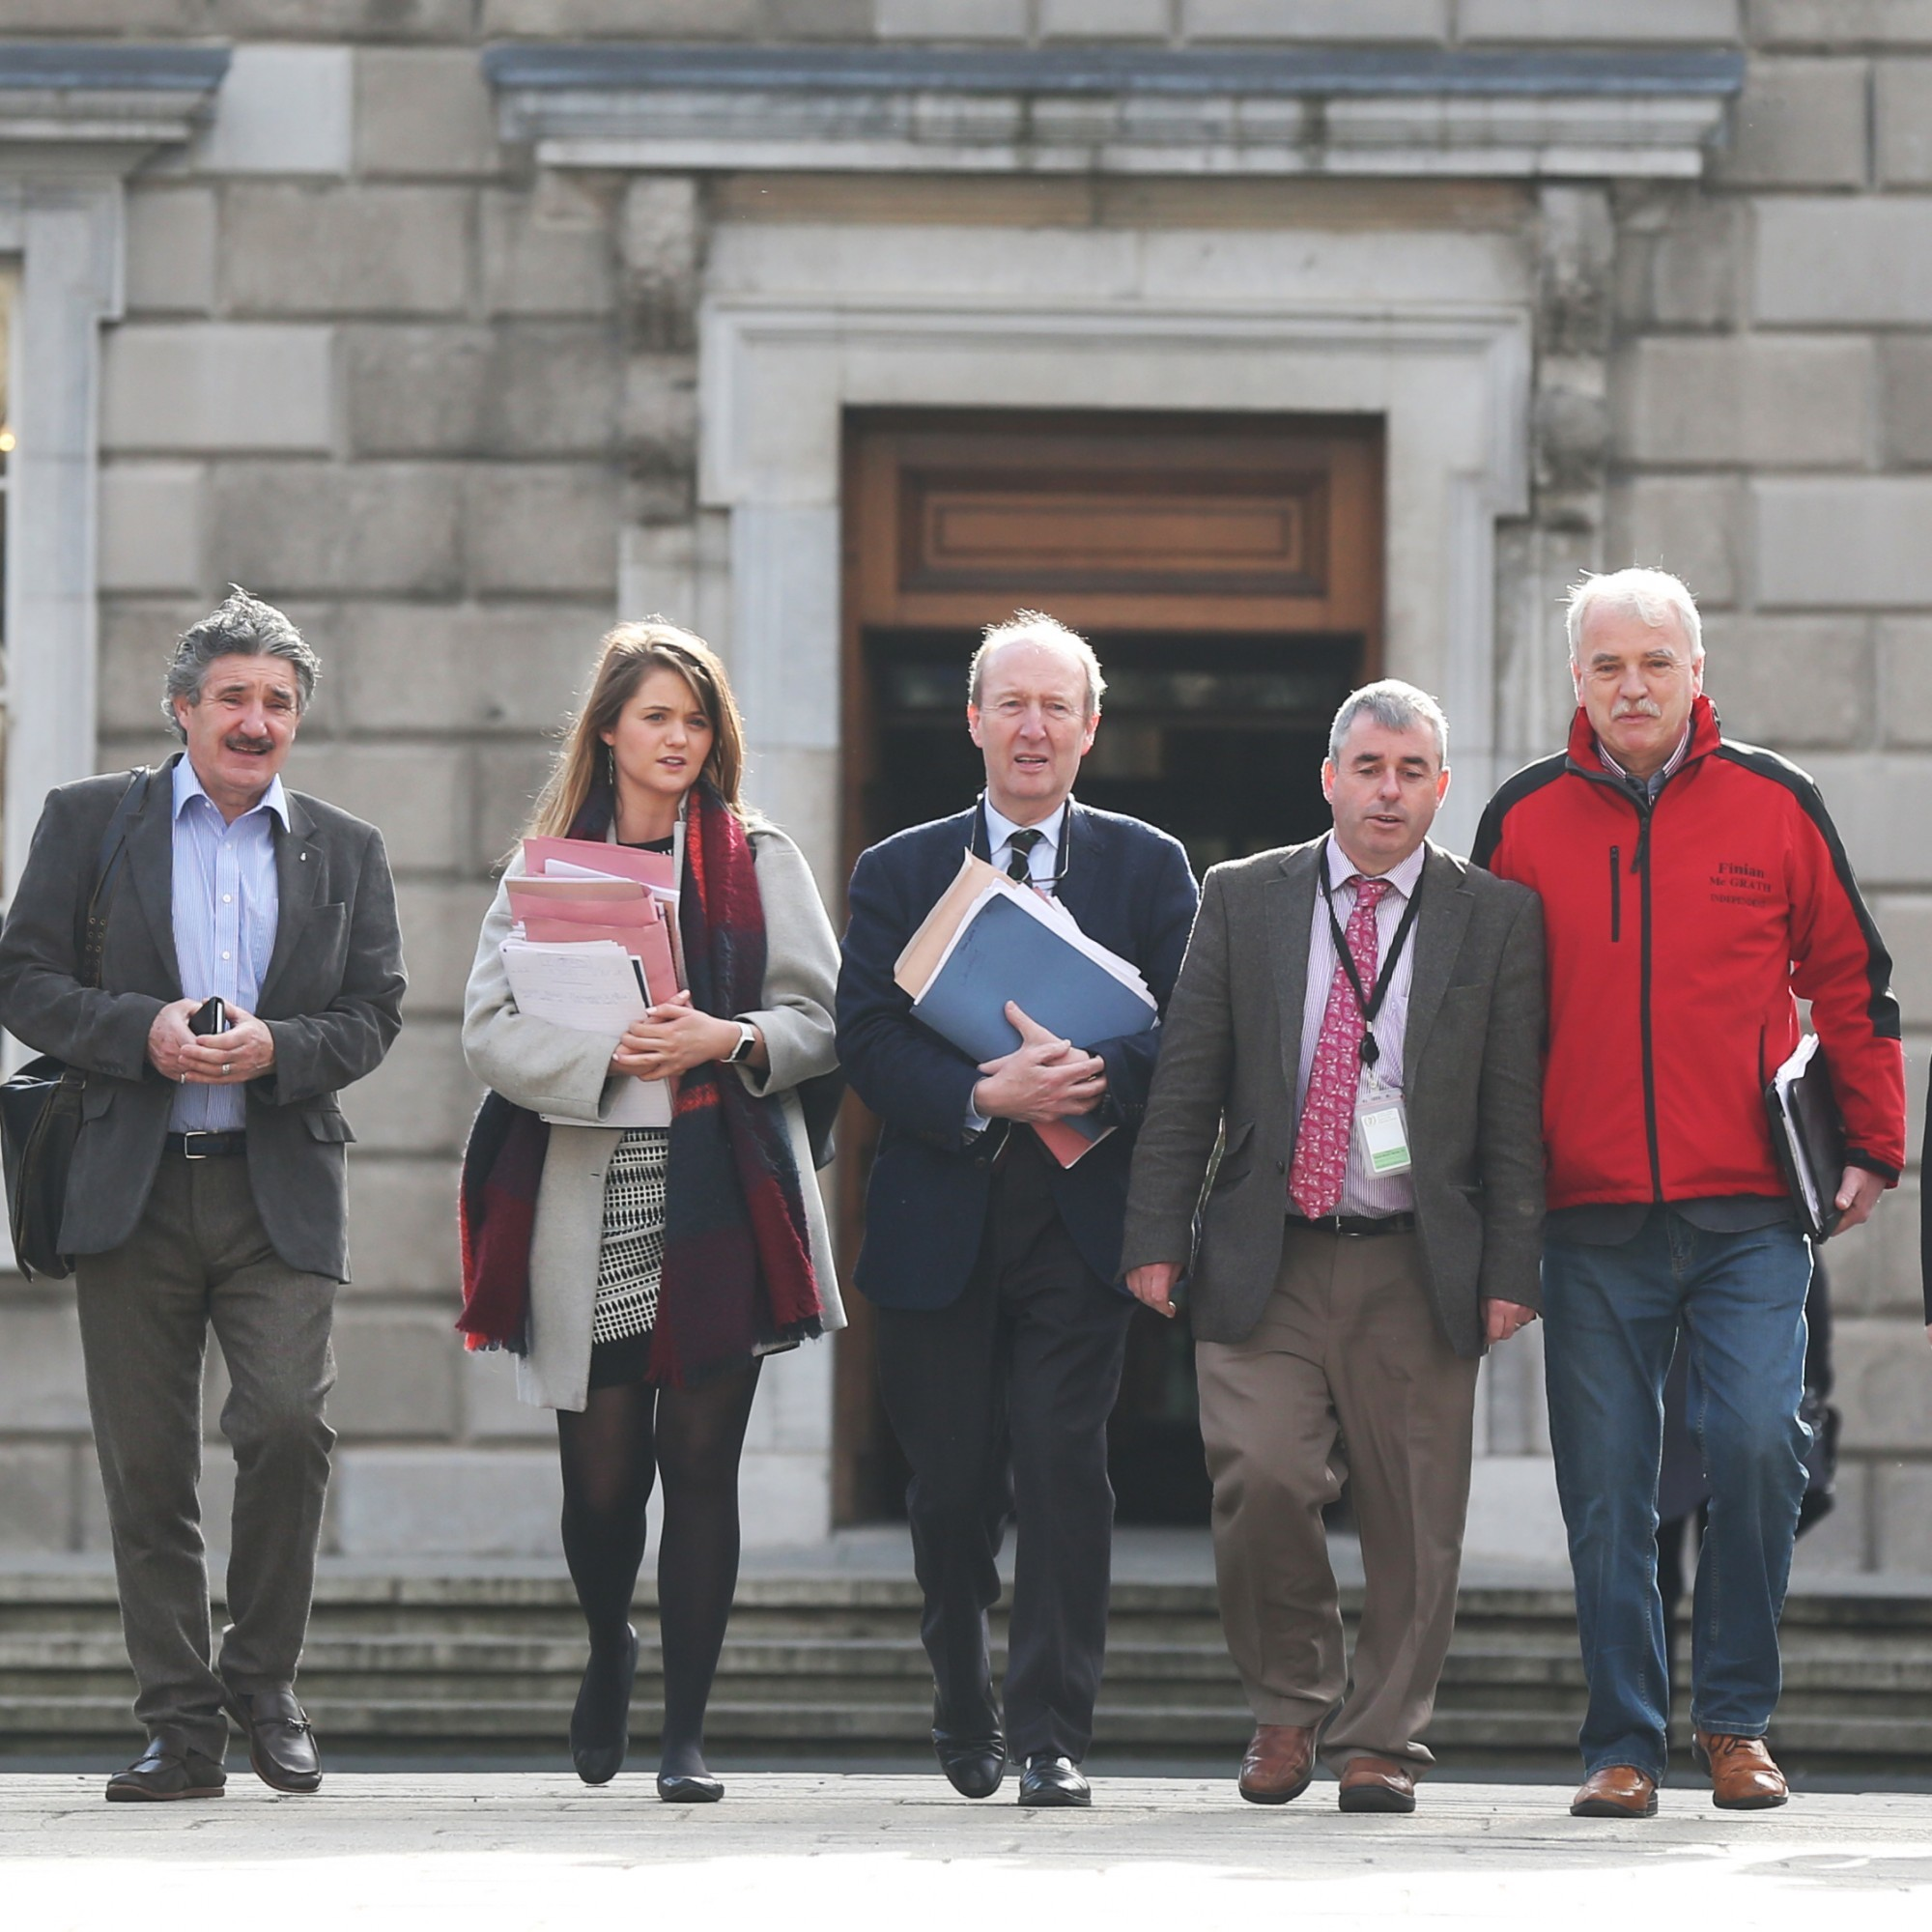 'I won't make promises we can't keep': Independents ready to bargain with Fine Gael